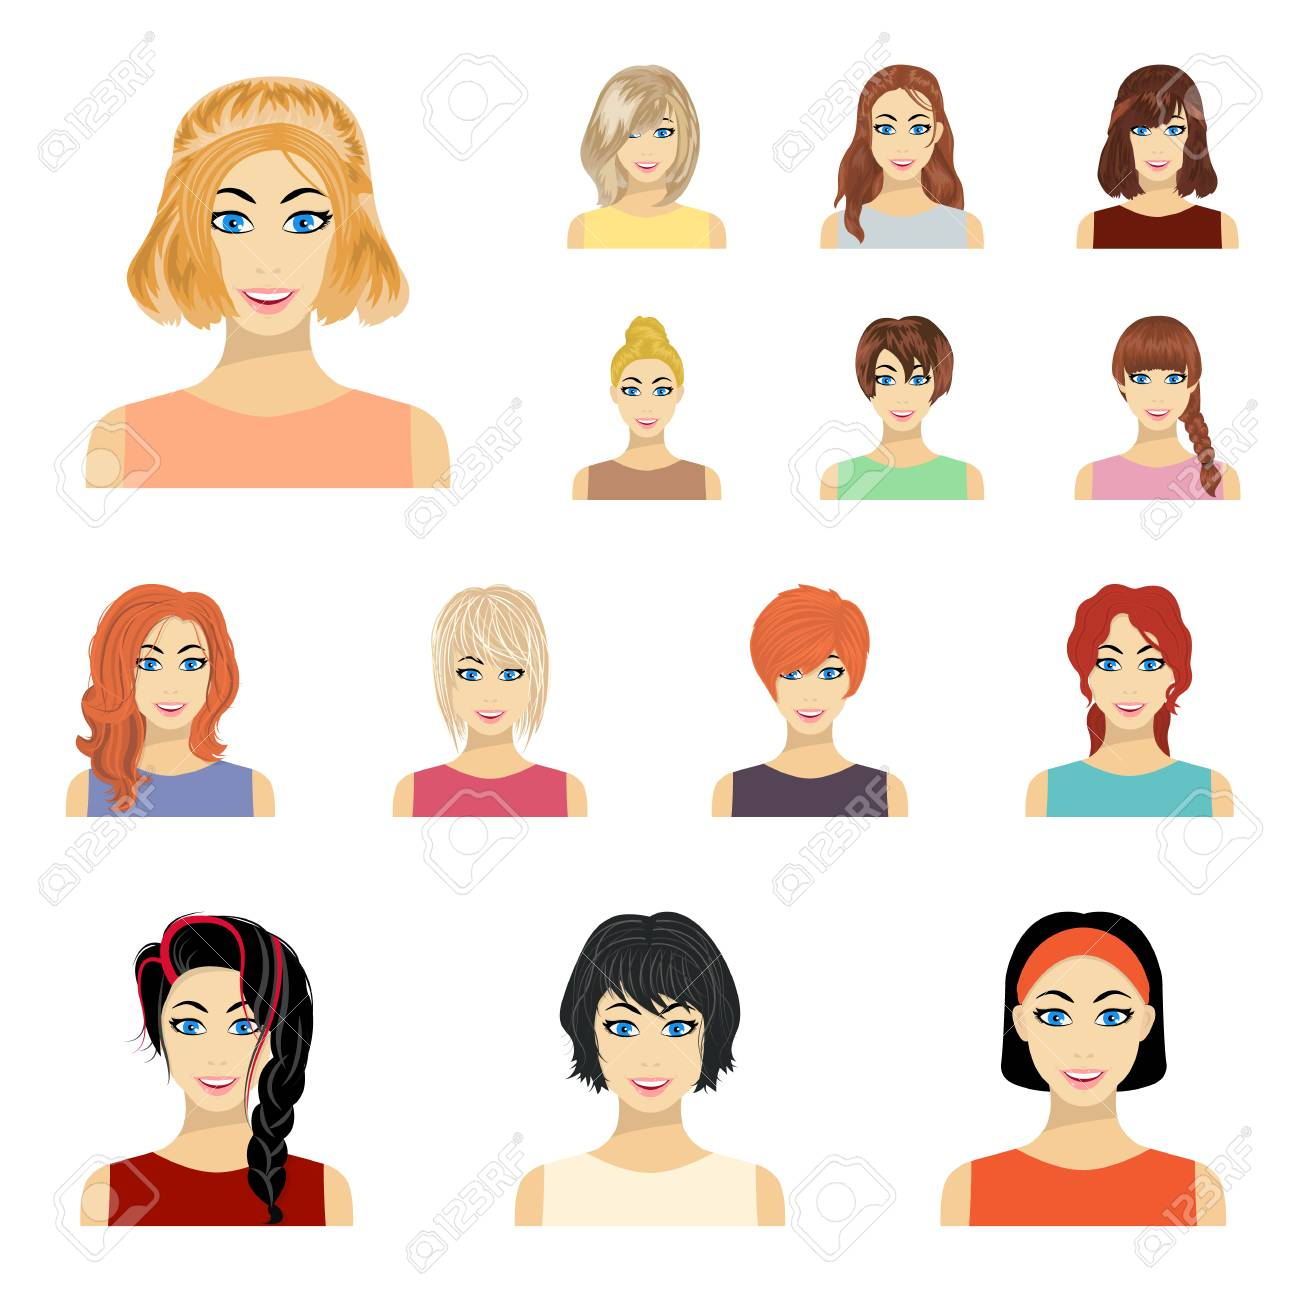 Types Of Female Hairstyles Cartoon Icons In Set Collection For